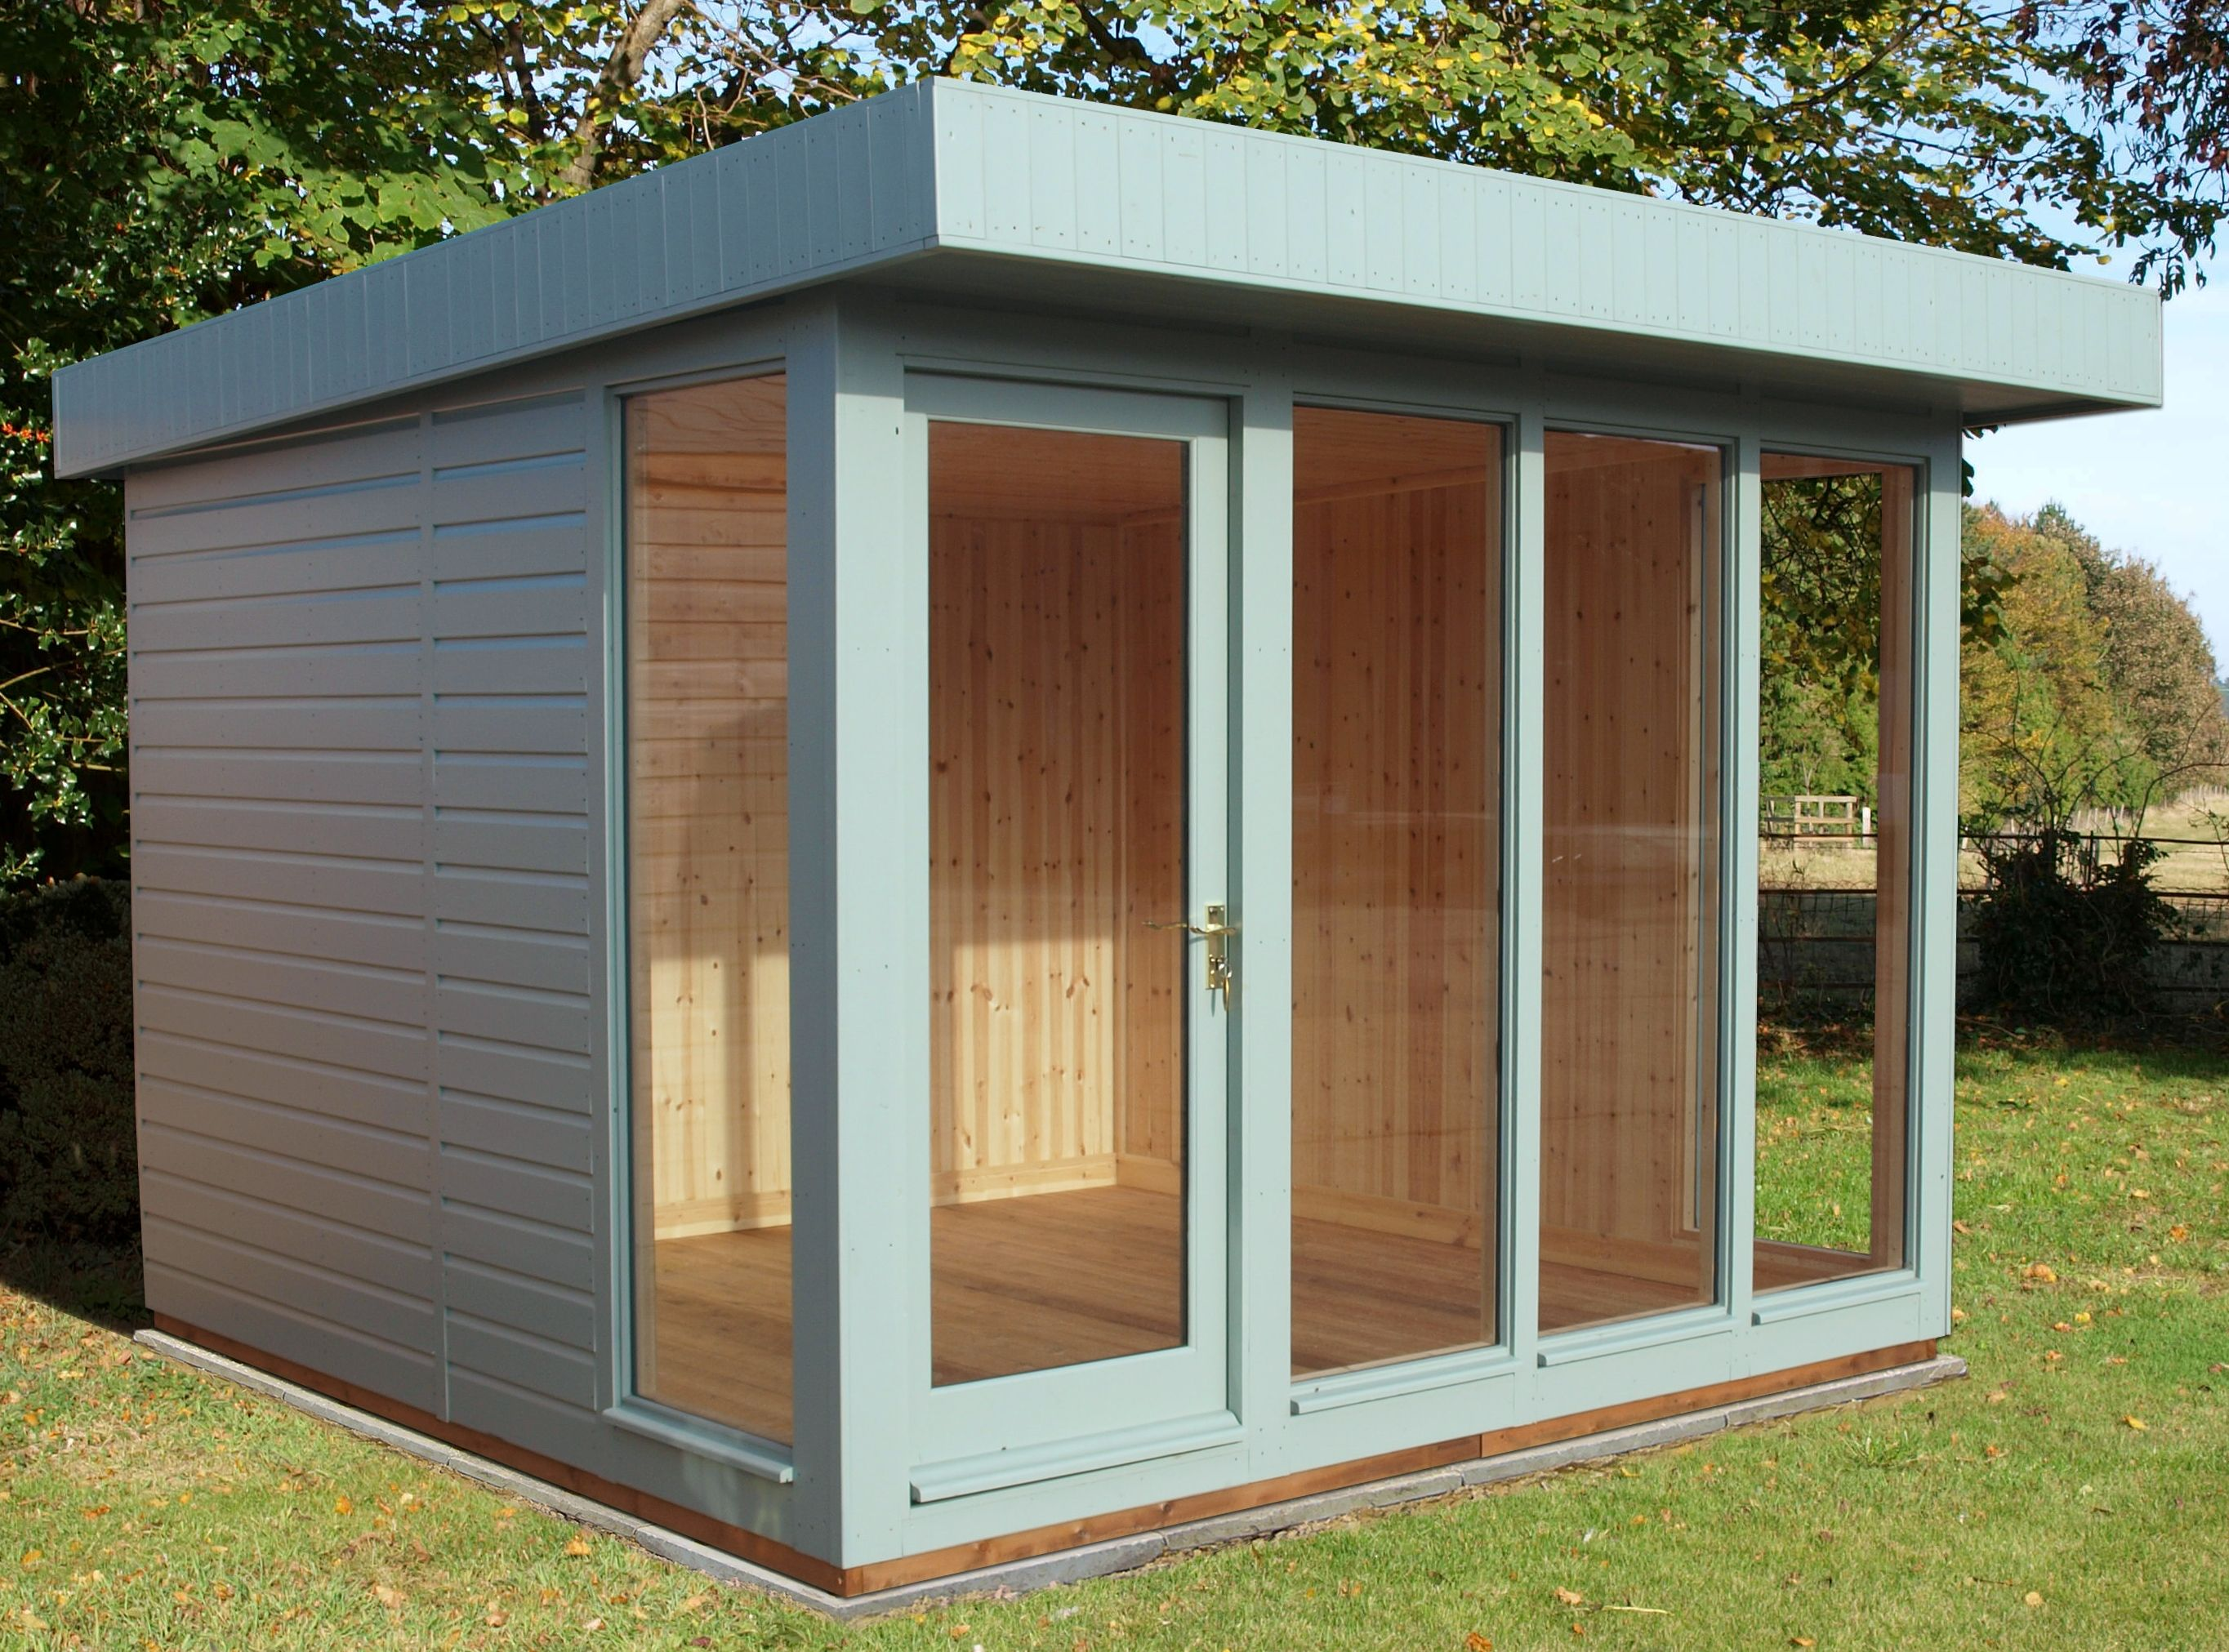 where sheds diy backyard for garden shed storage plans search pin designs to building contemporary